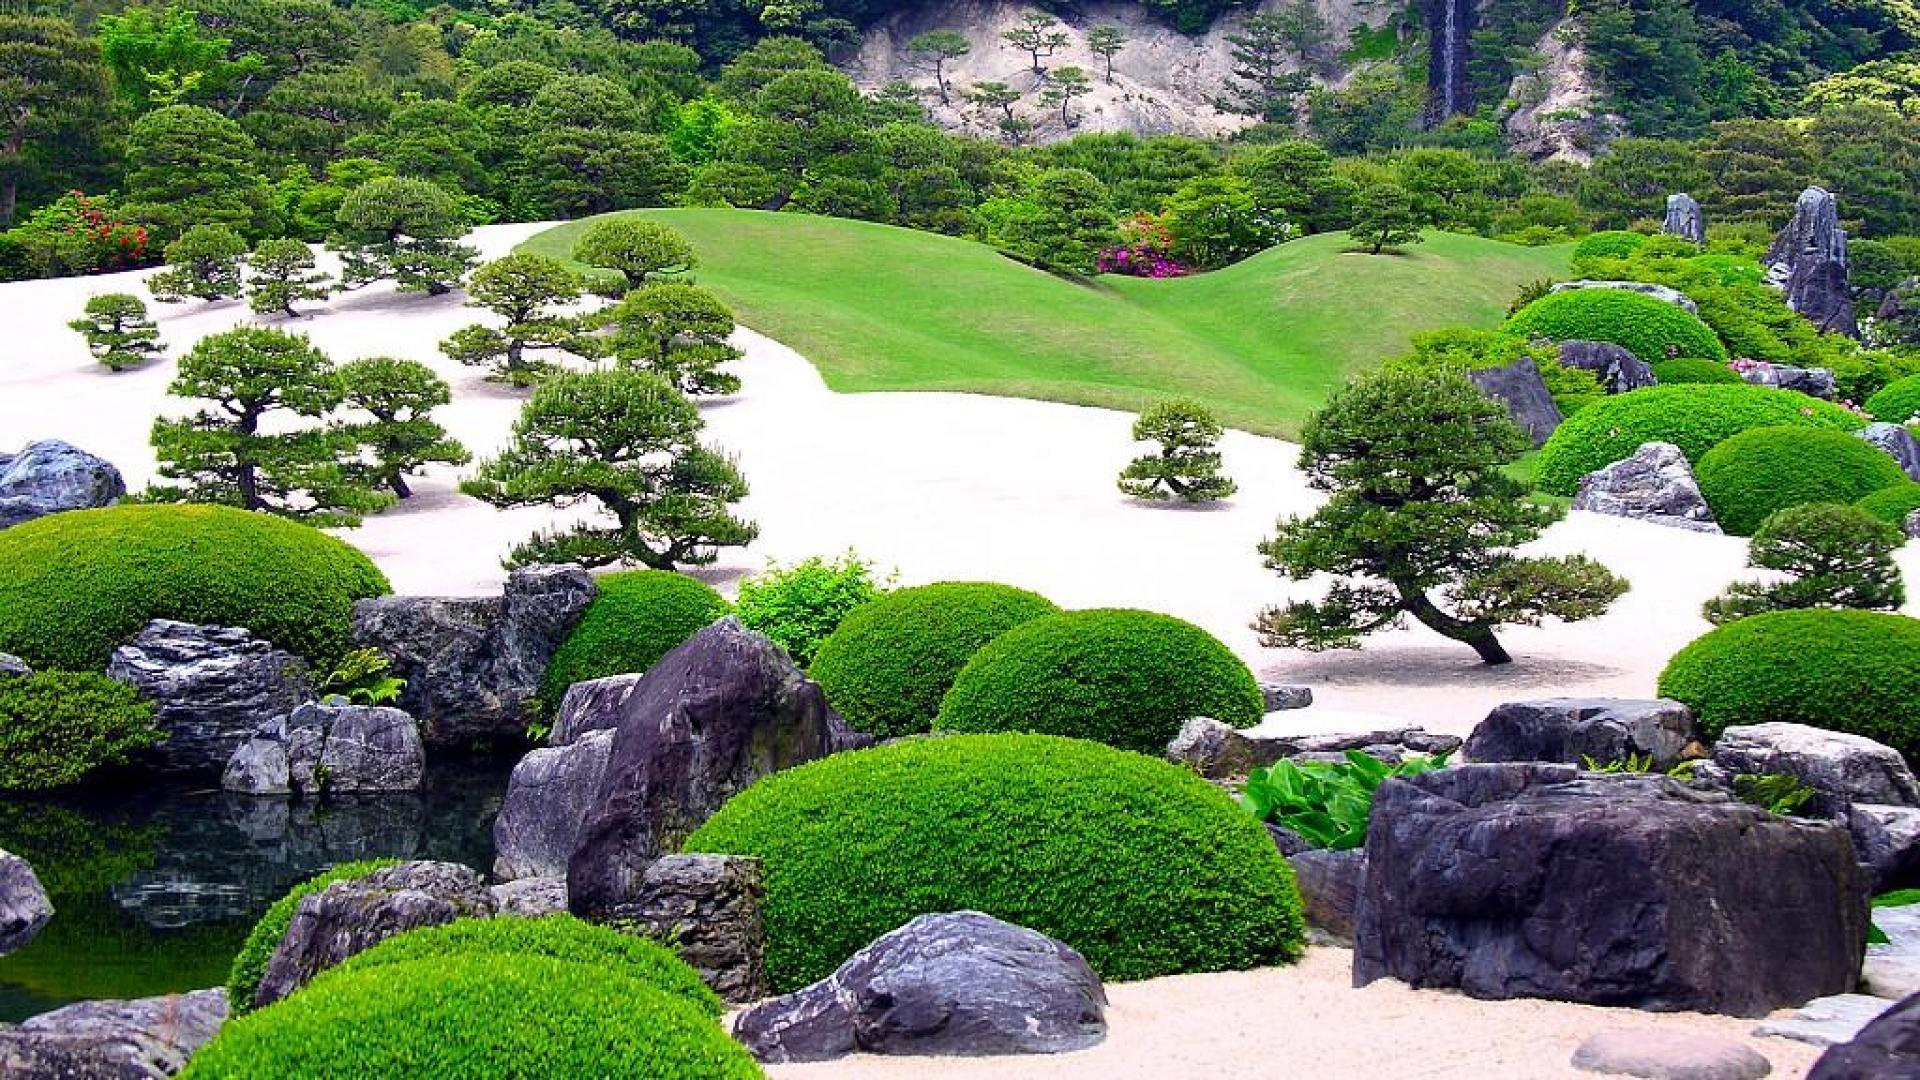 Japanese Gardens Wallpapers 1920x1080